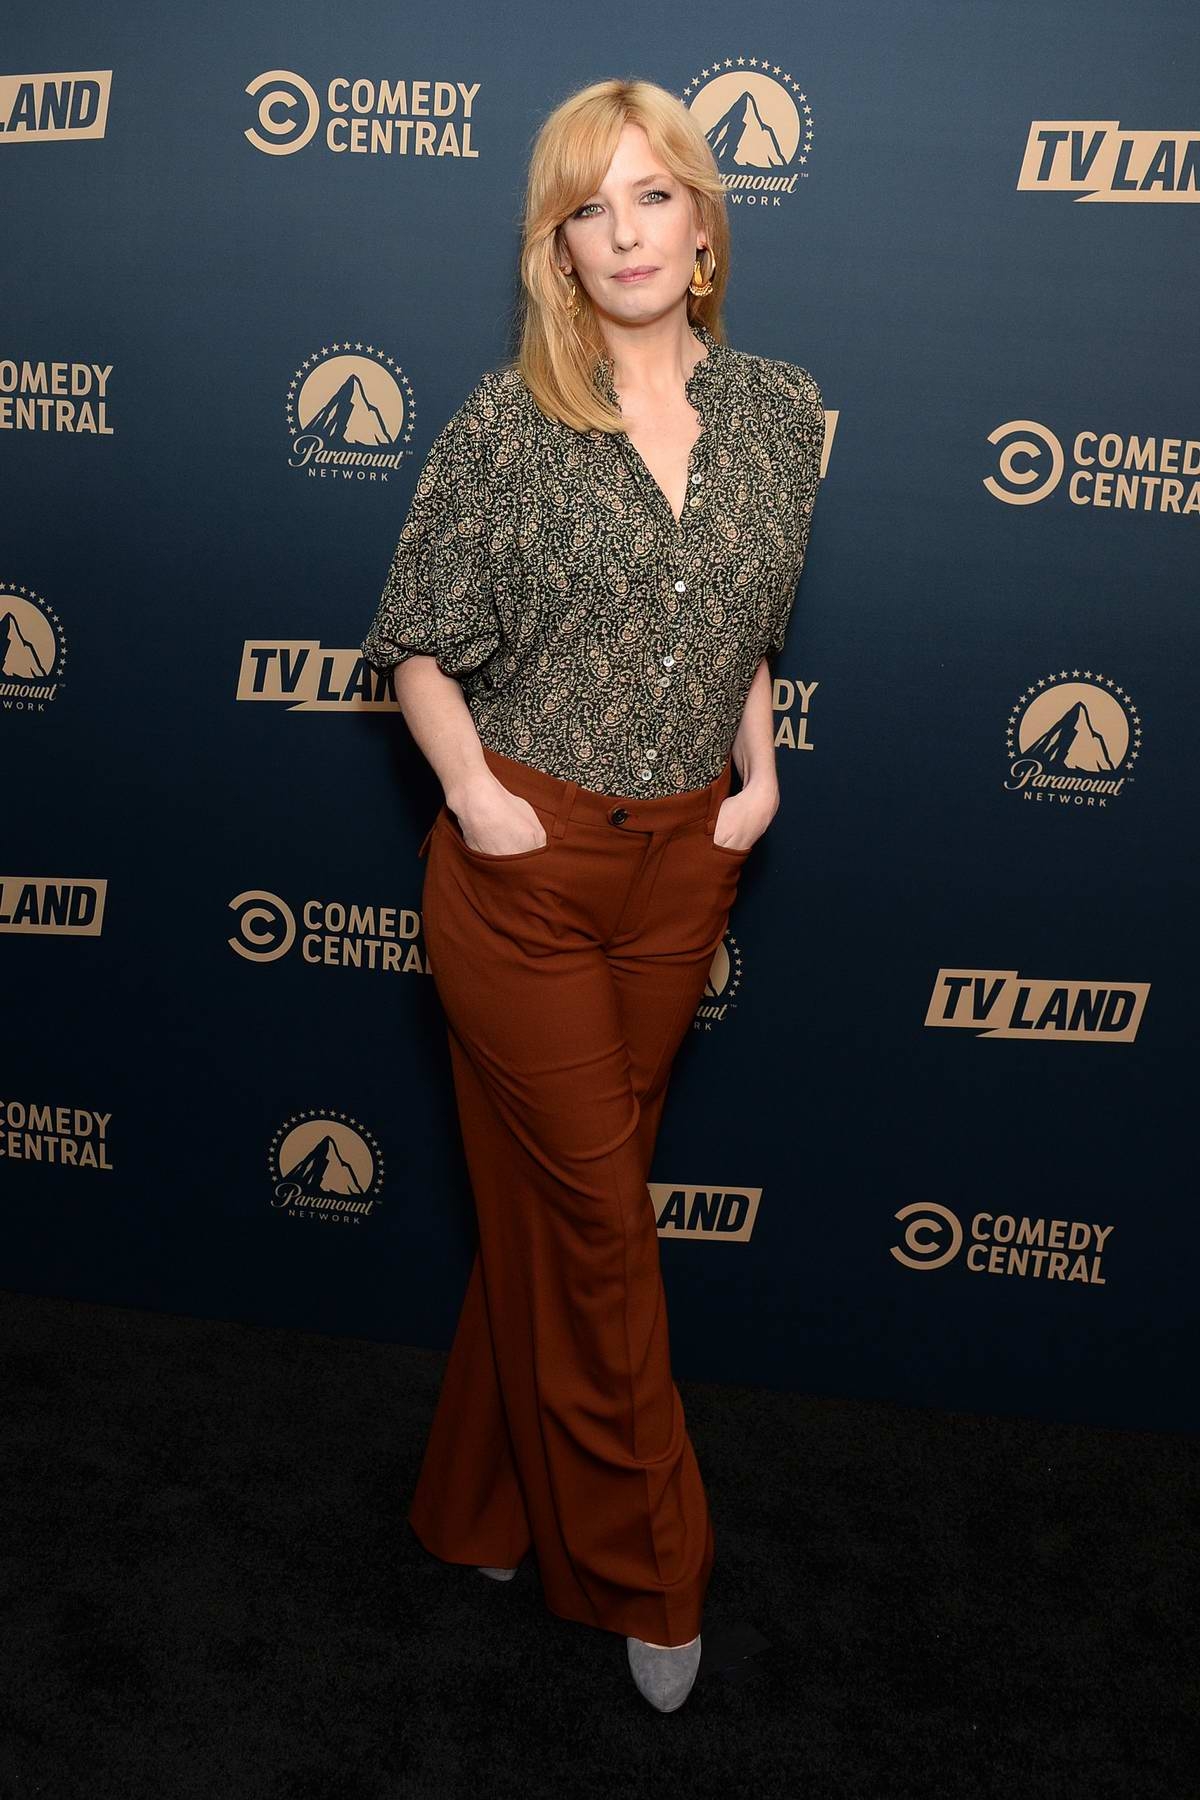 Kelly Reilly attends the Comedy Central, Paramount Network and TV Land Press Day in Los Angeles